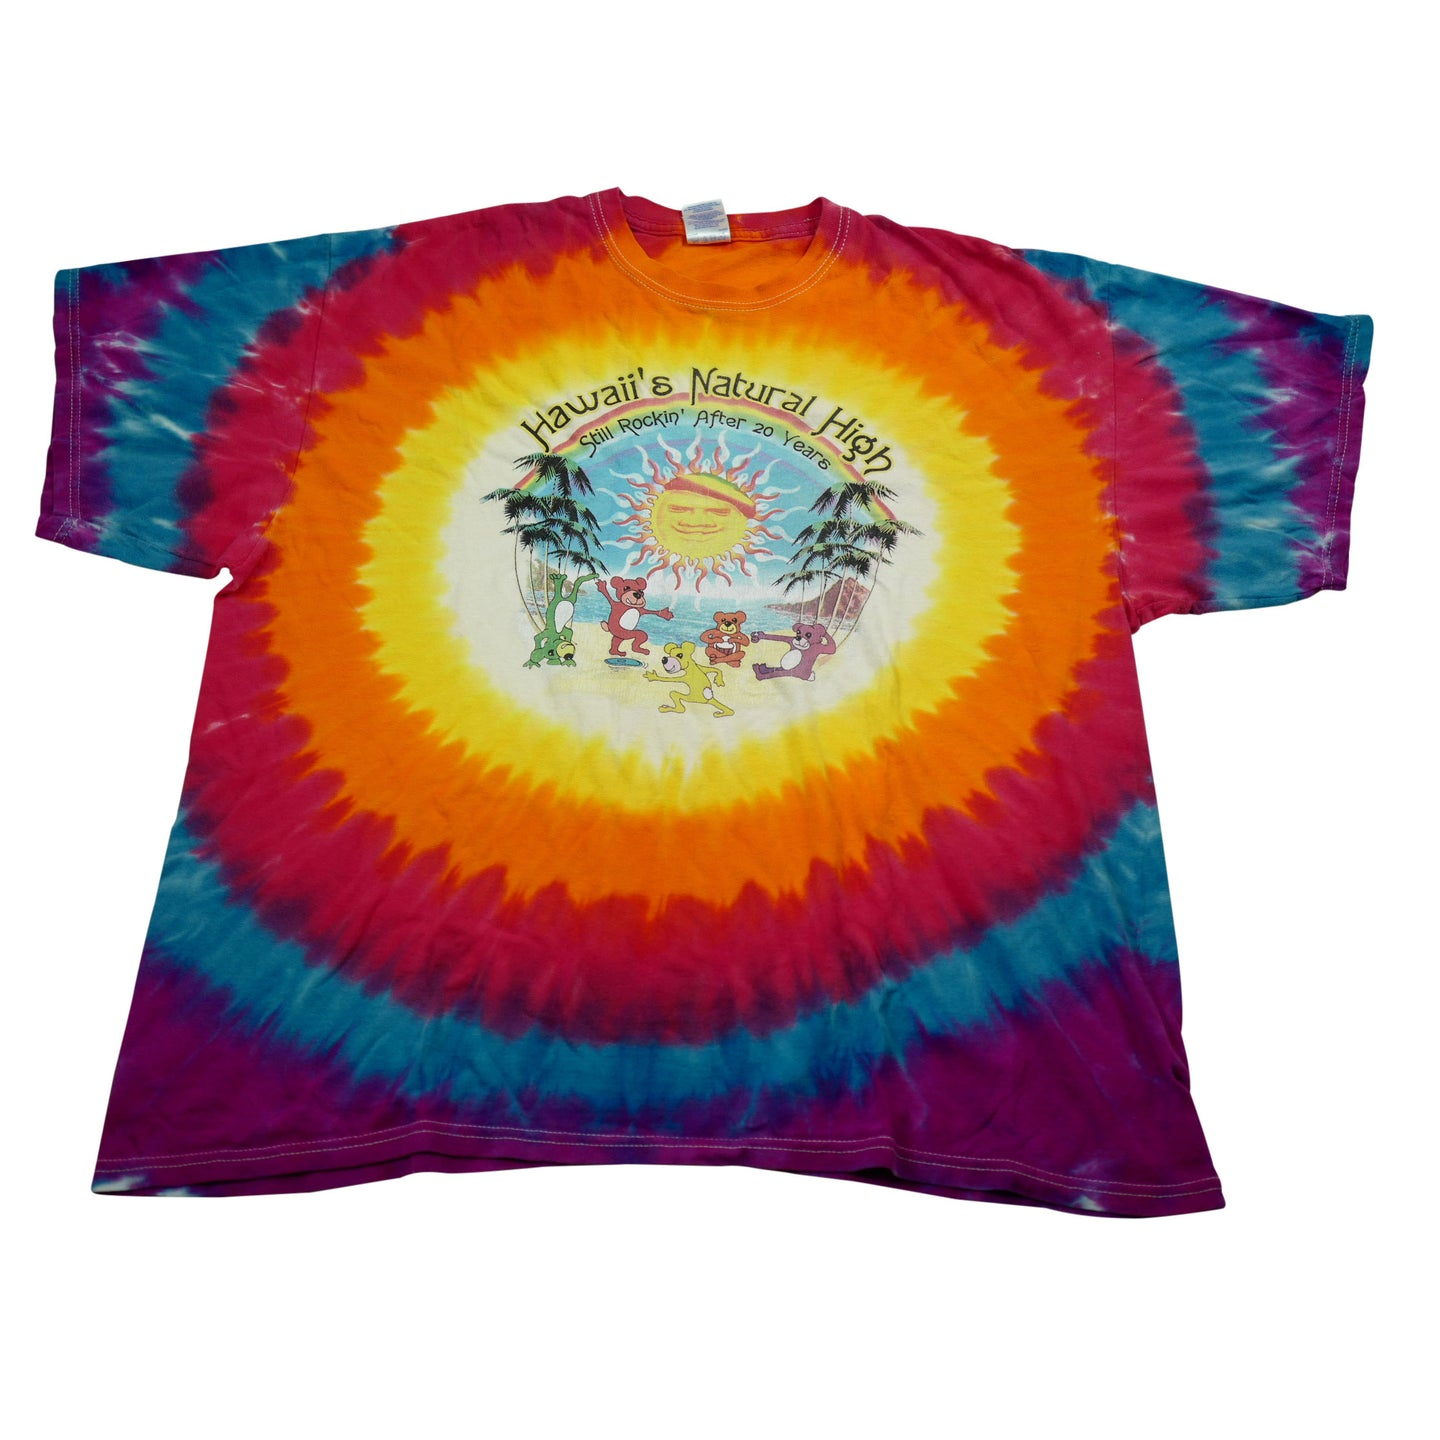 Hawaii's Natural High Tie Dye Tee